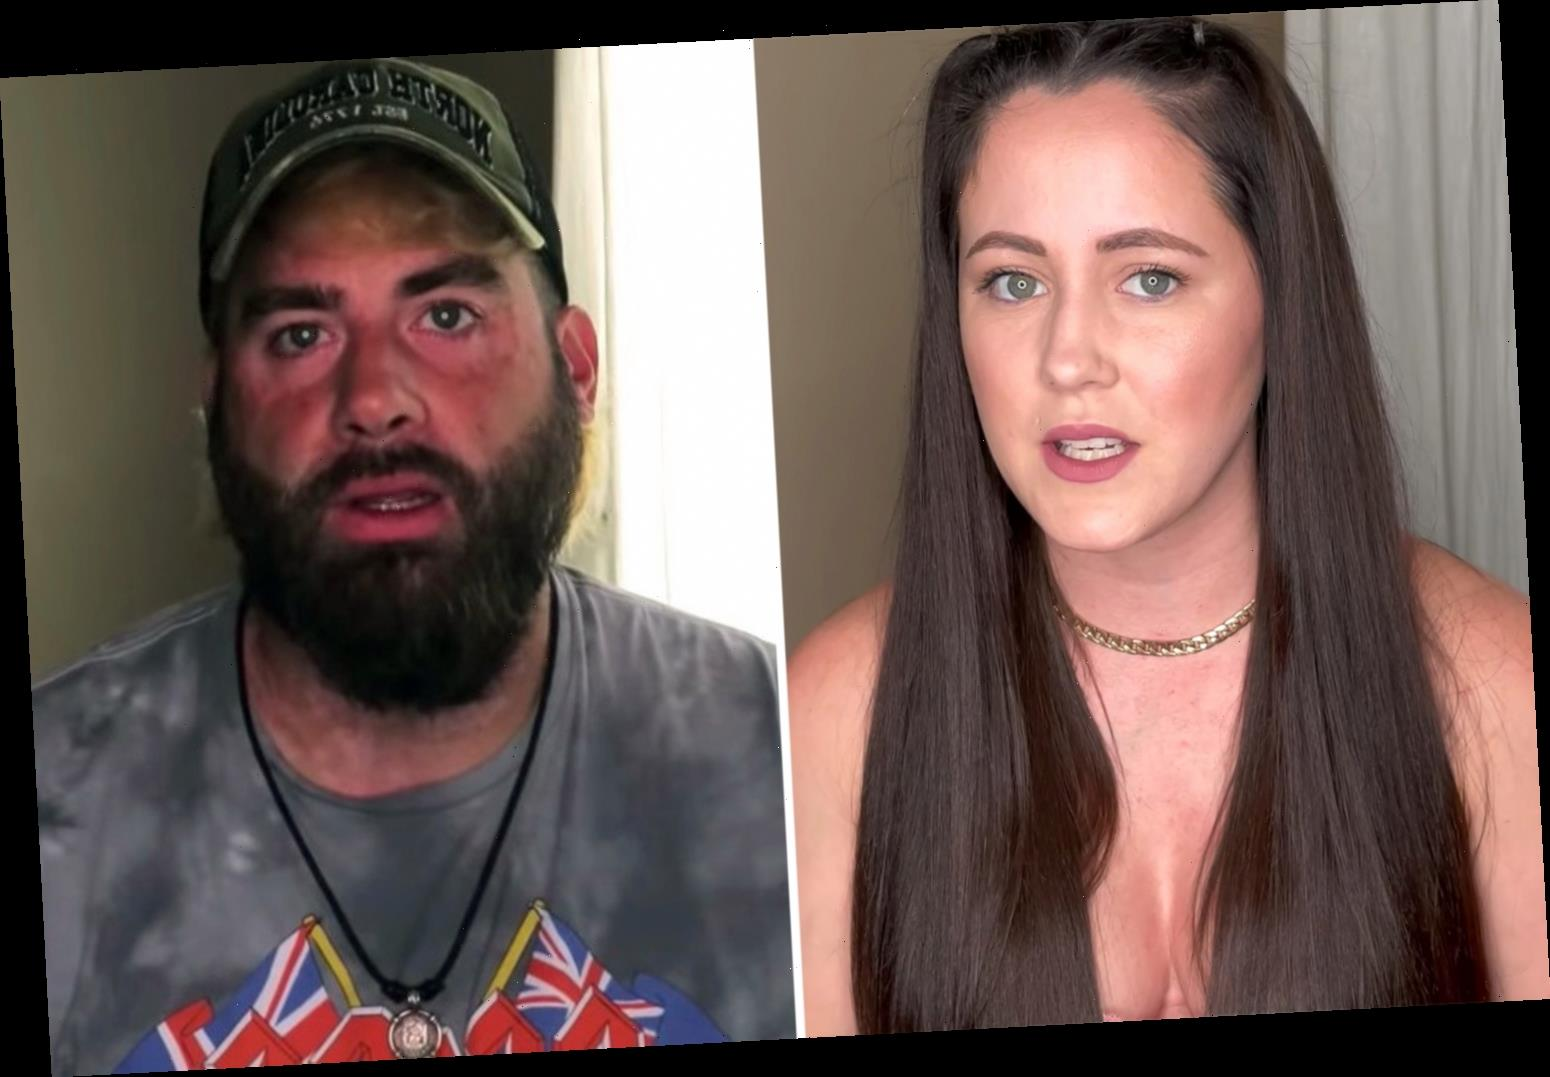 Jenelle Evans says husband David 'ruined' her career as she slams his 'attitude' in footage from 2019 after their split